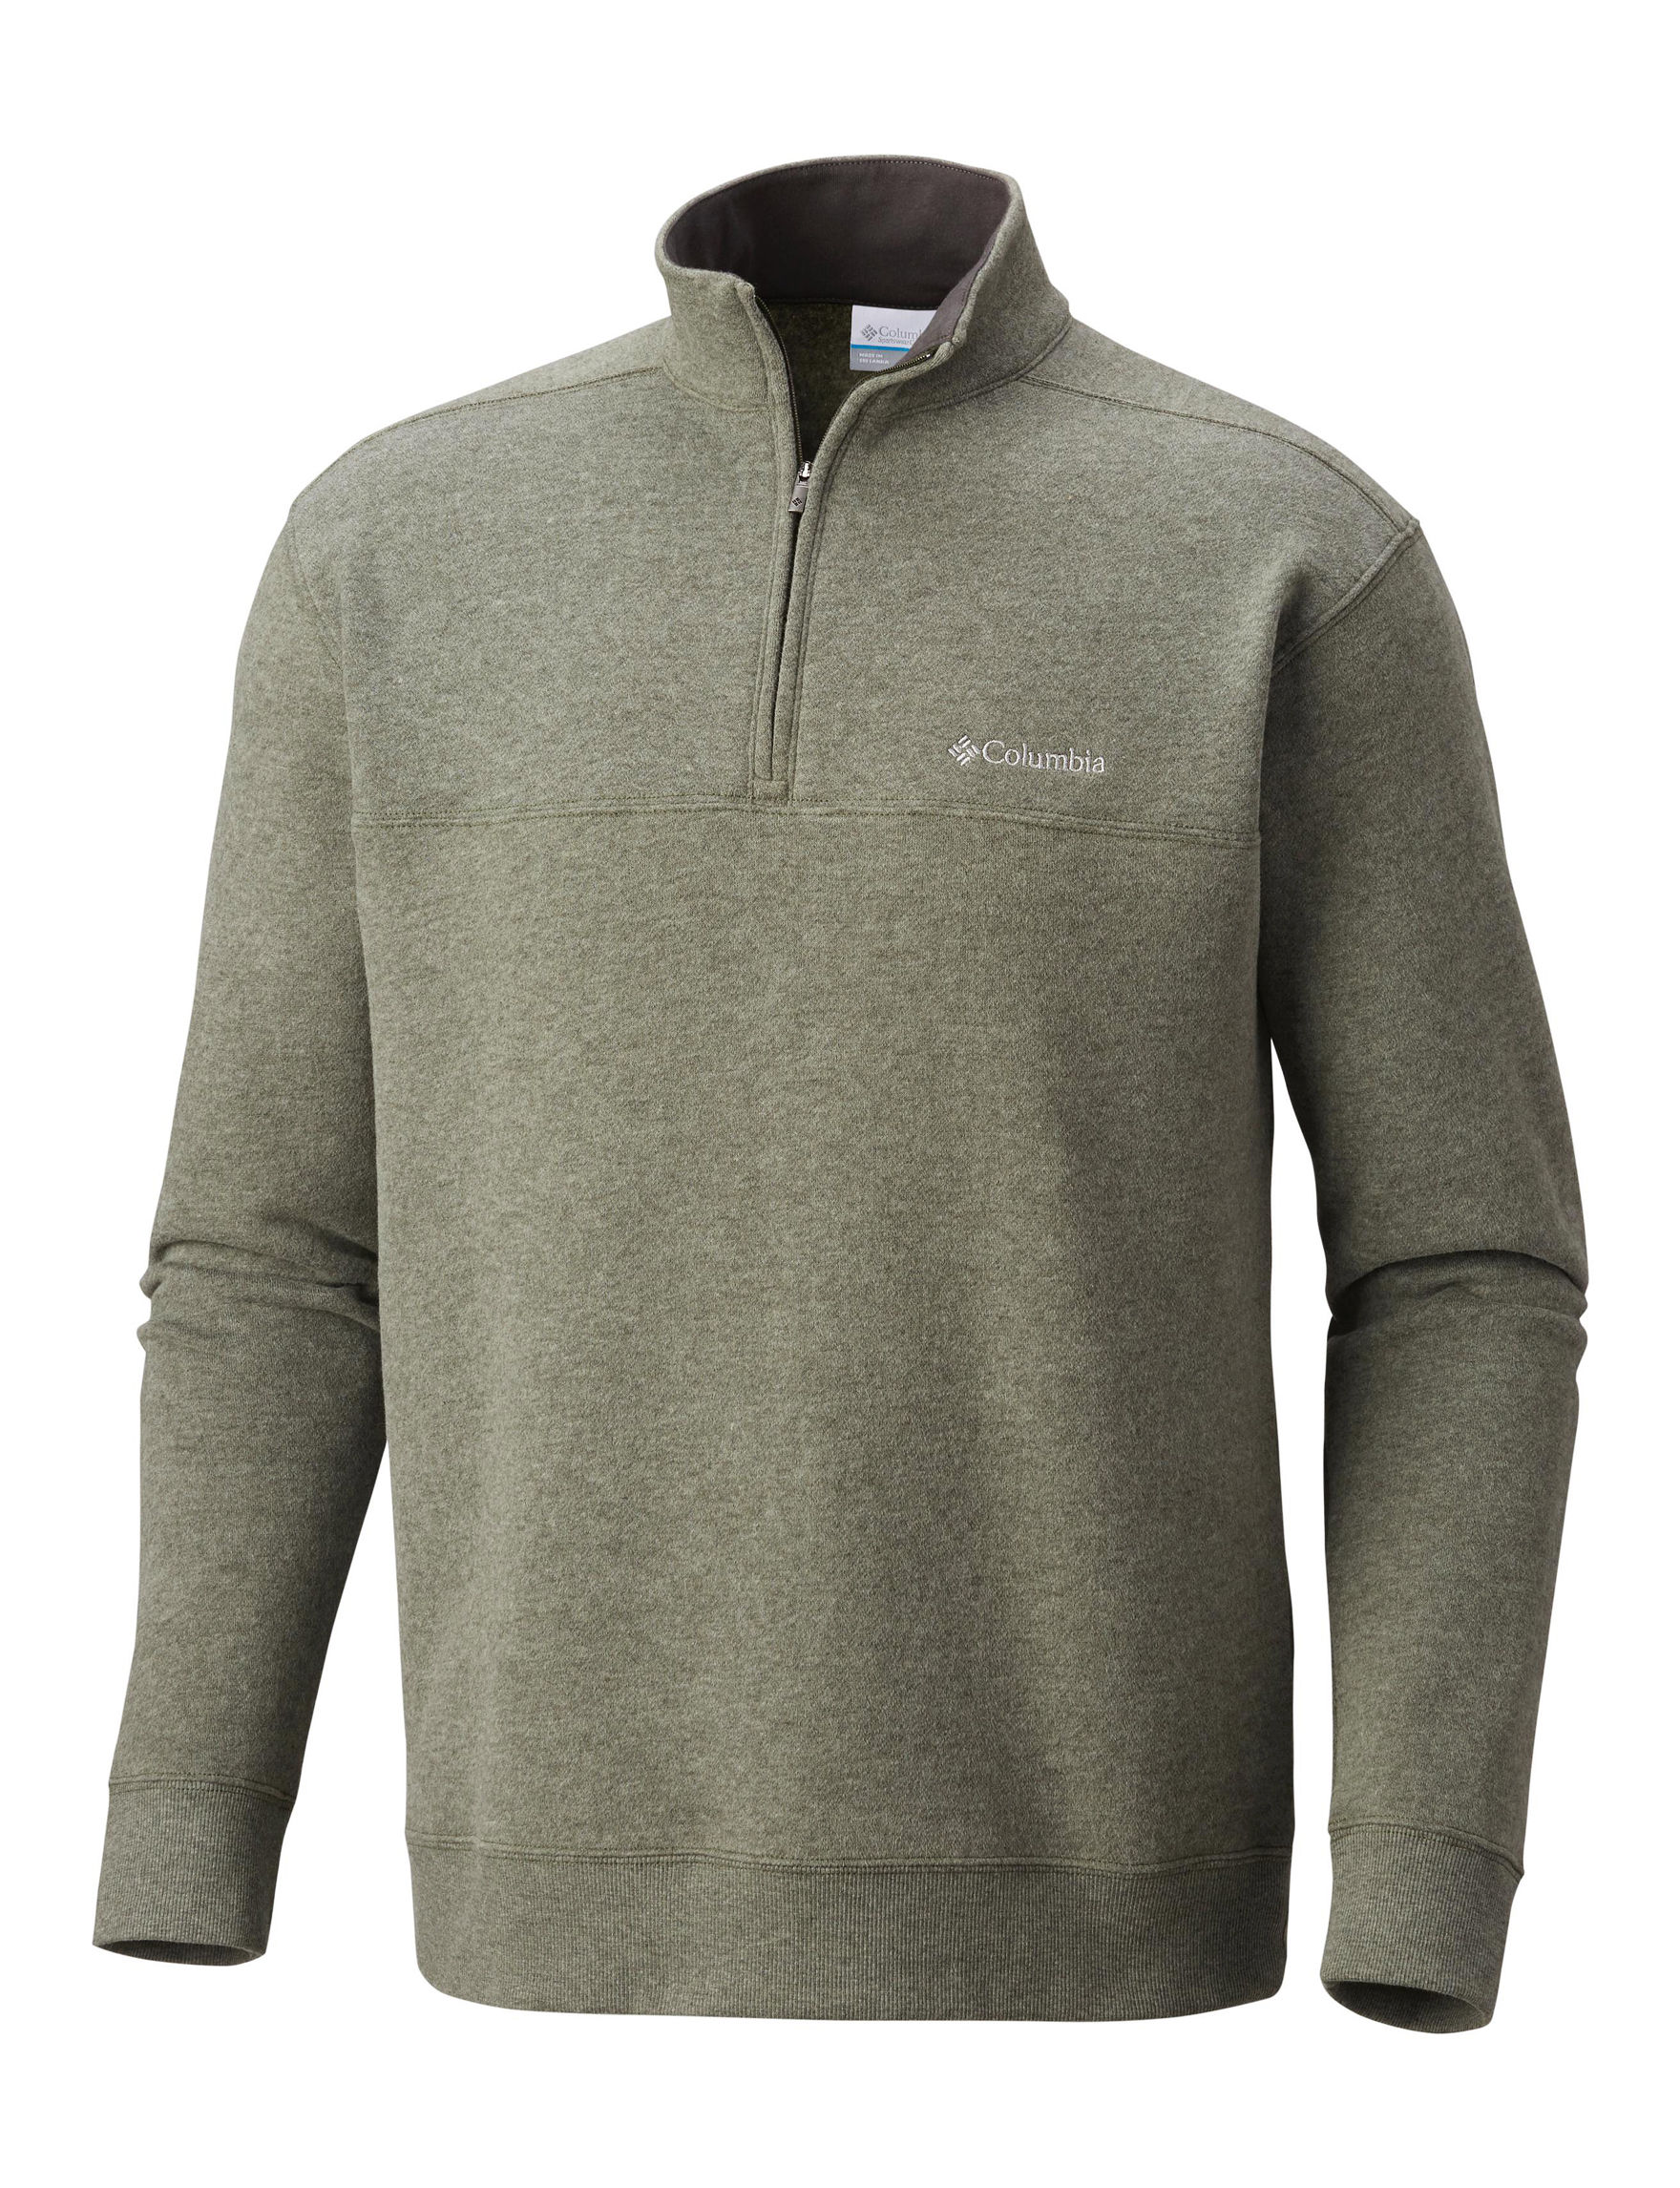 Columbia Green Pull-overs